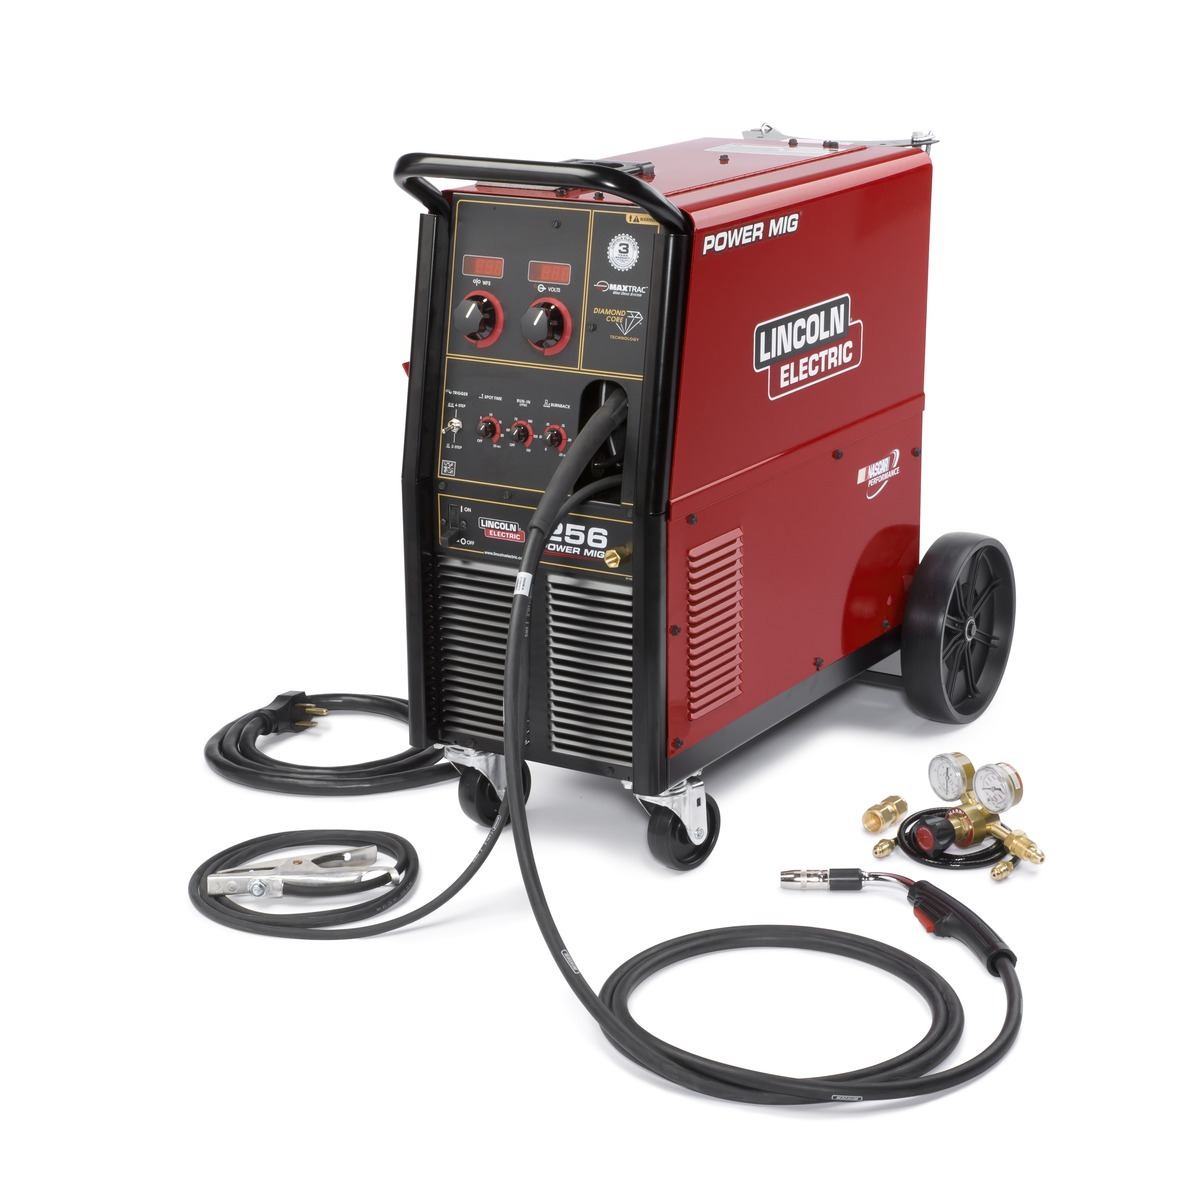 Airgas Mig Welding Process Diagram Lincoln Electric Power 256 Welder 208 230volt With Magnum Pro